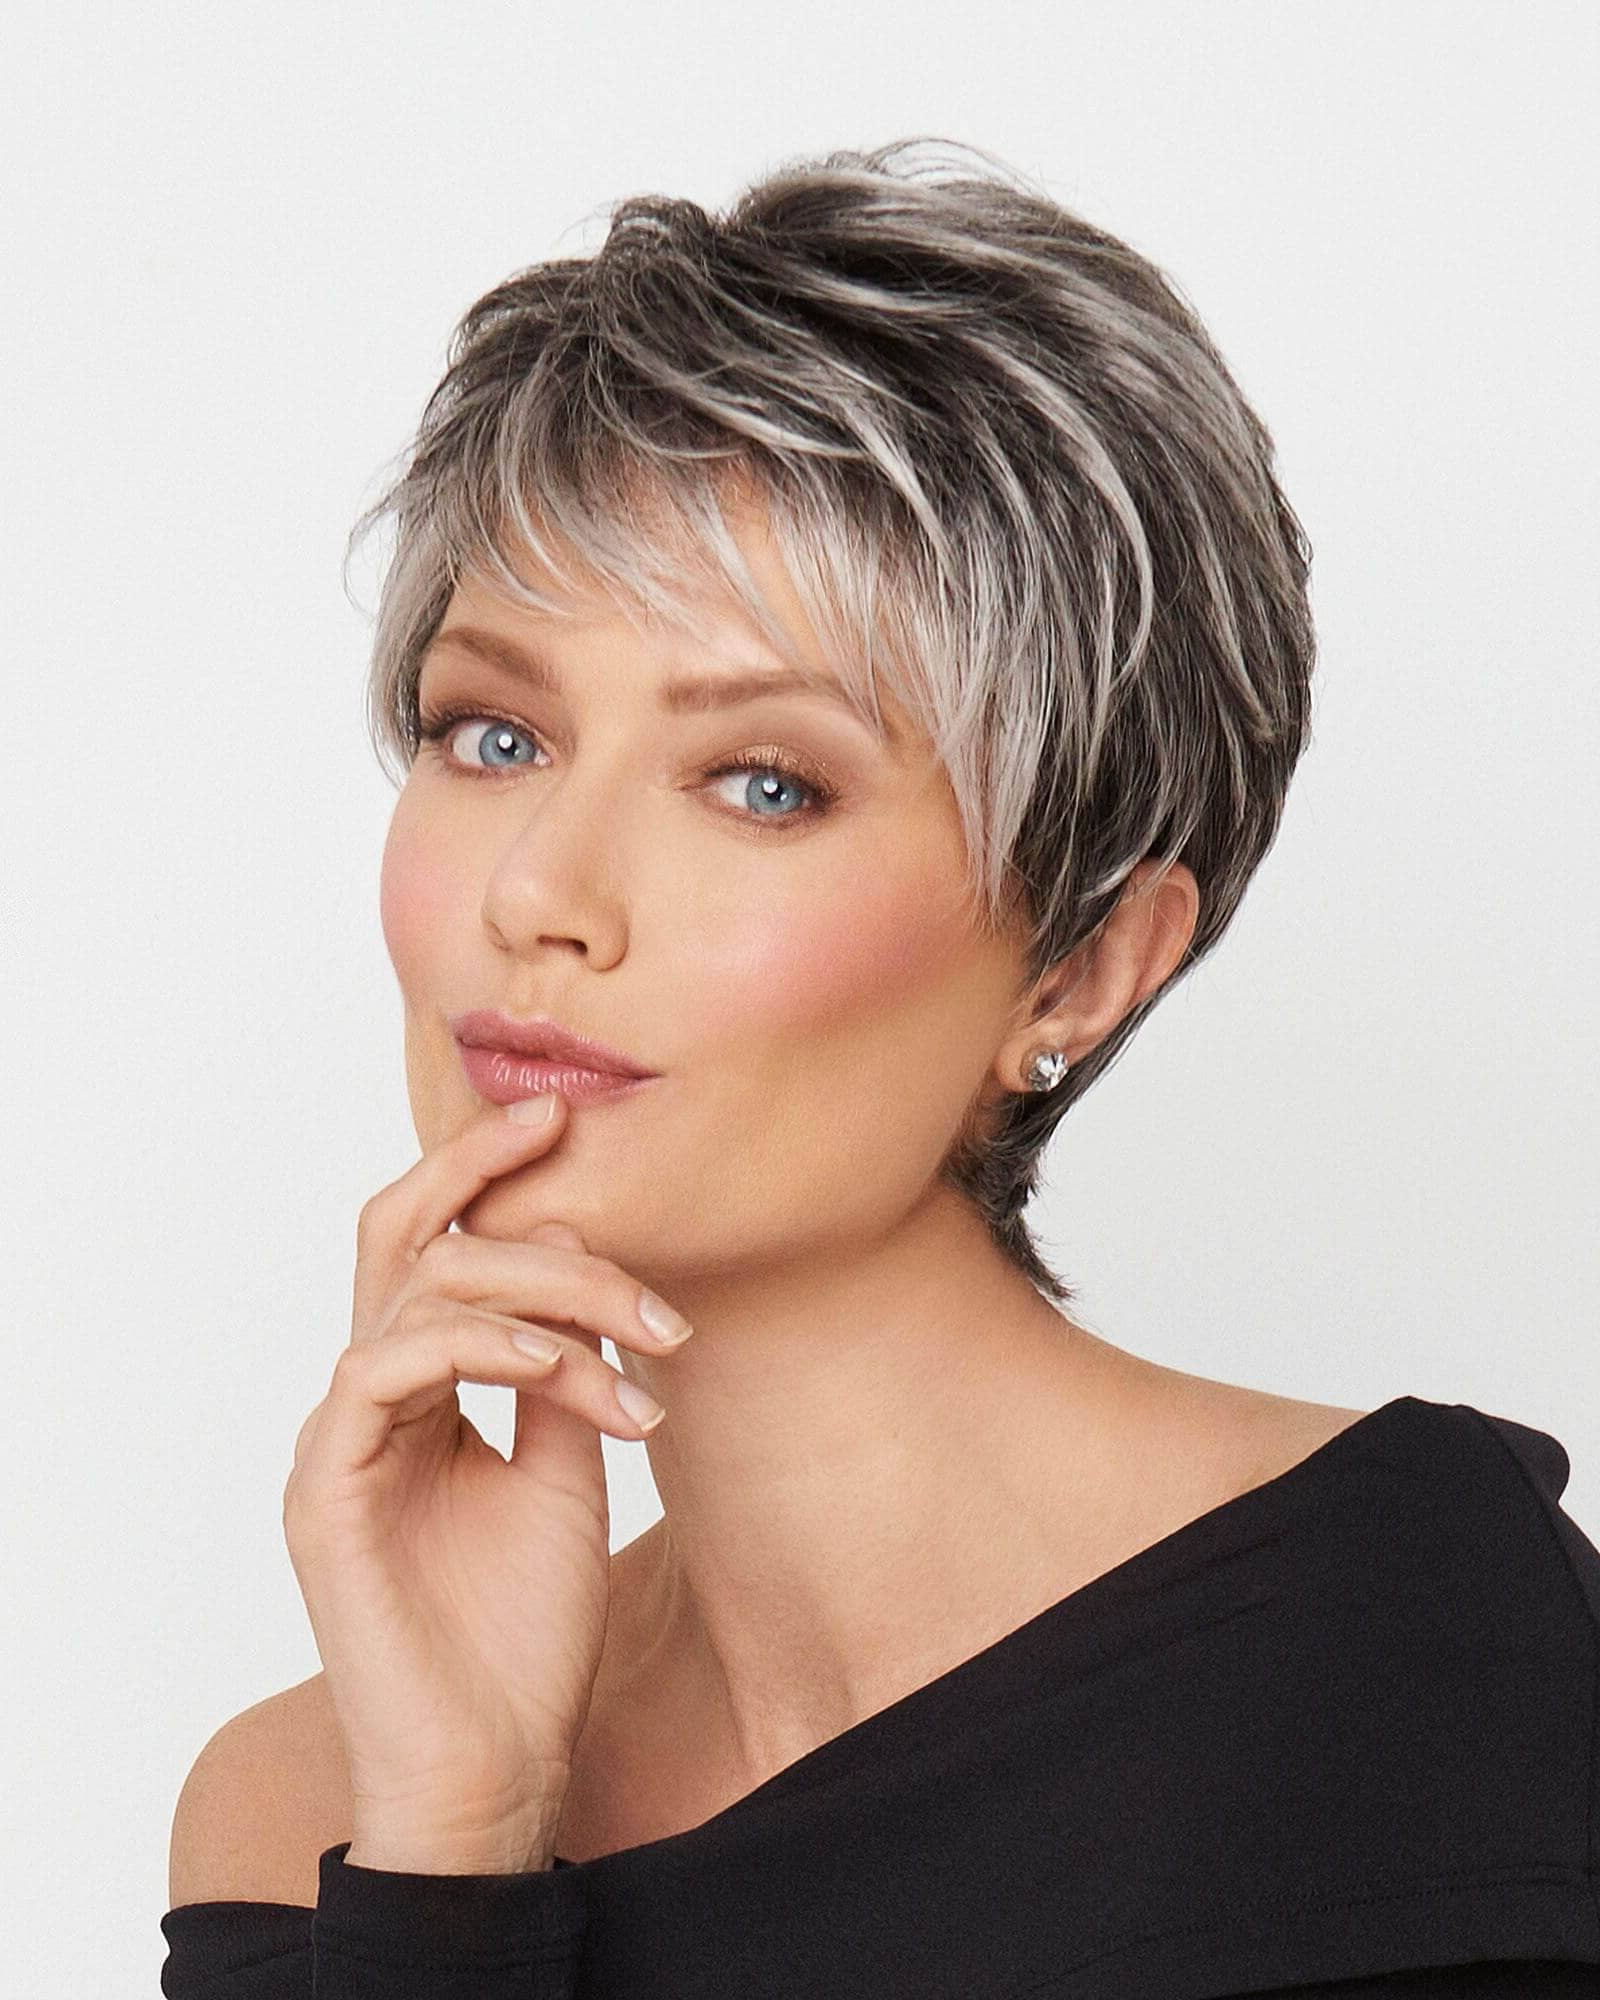 50 Pixie Haircuts You'll See Trending In 2018 Pertaining To Long Ash Blonde Pixie Hairstyles For Fine Hair (View 12 of 20)